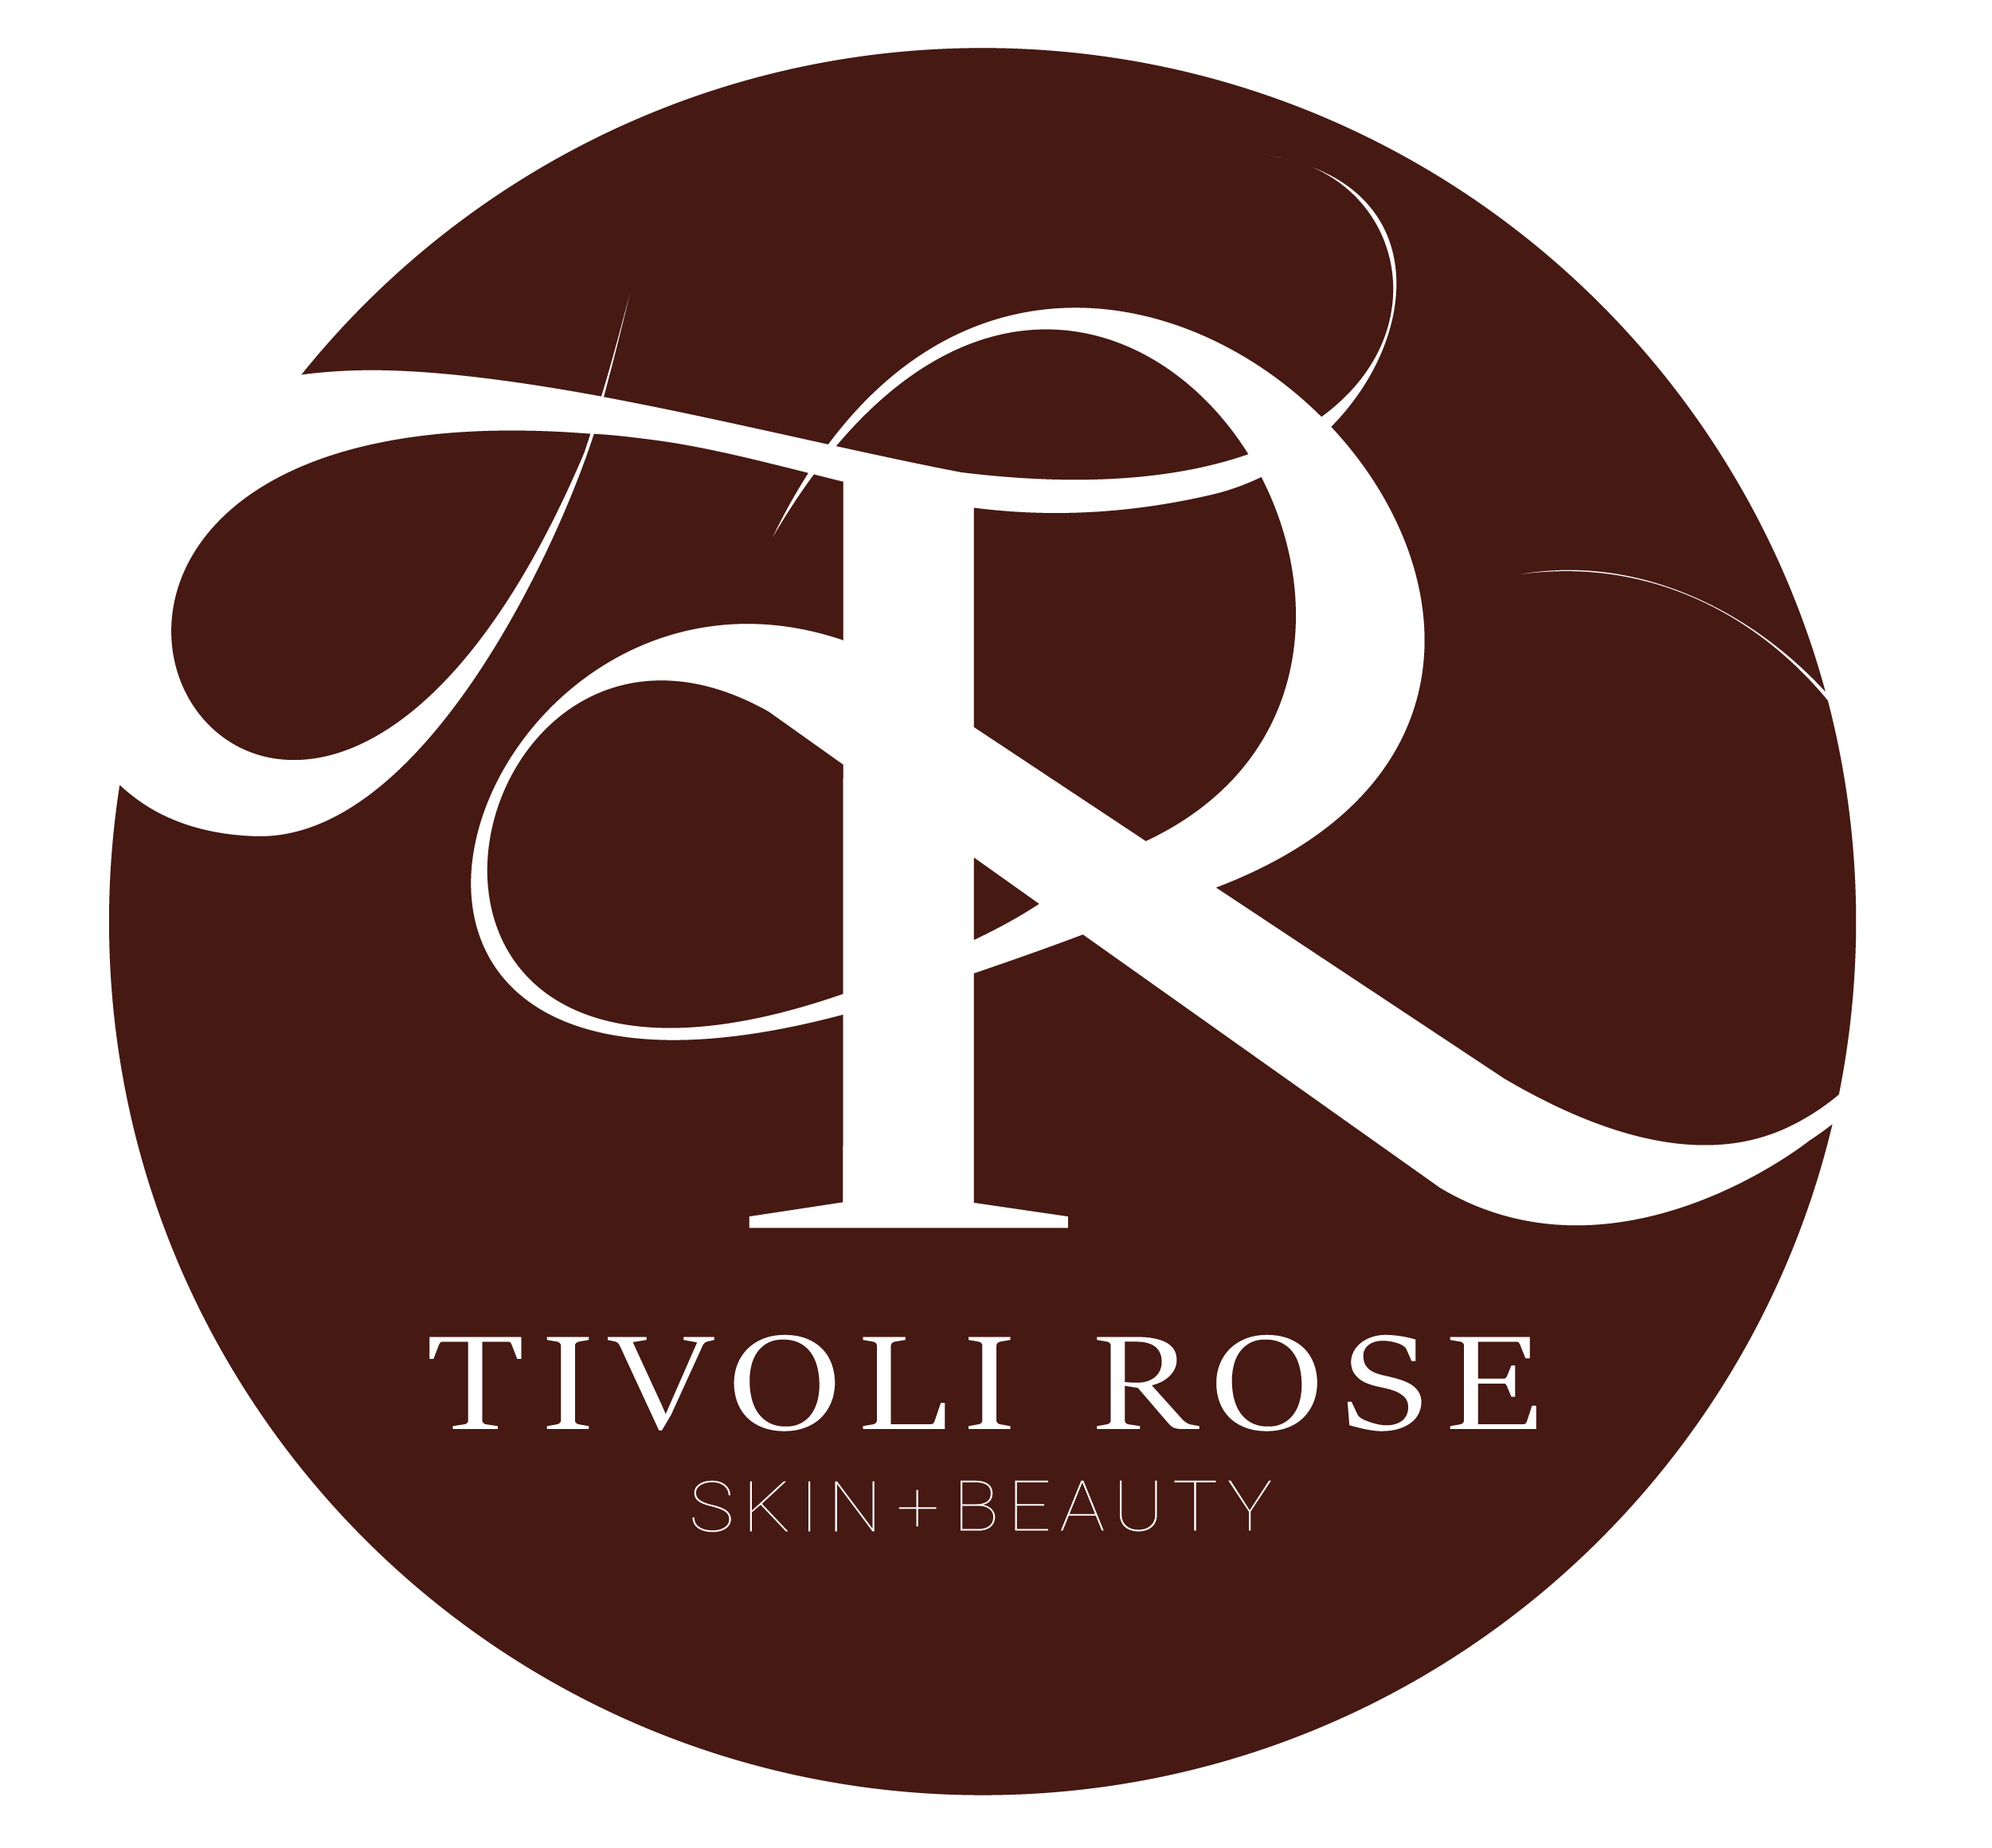 Tivoli Rose Skin + Beauty